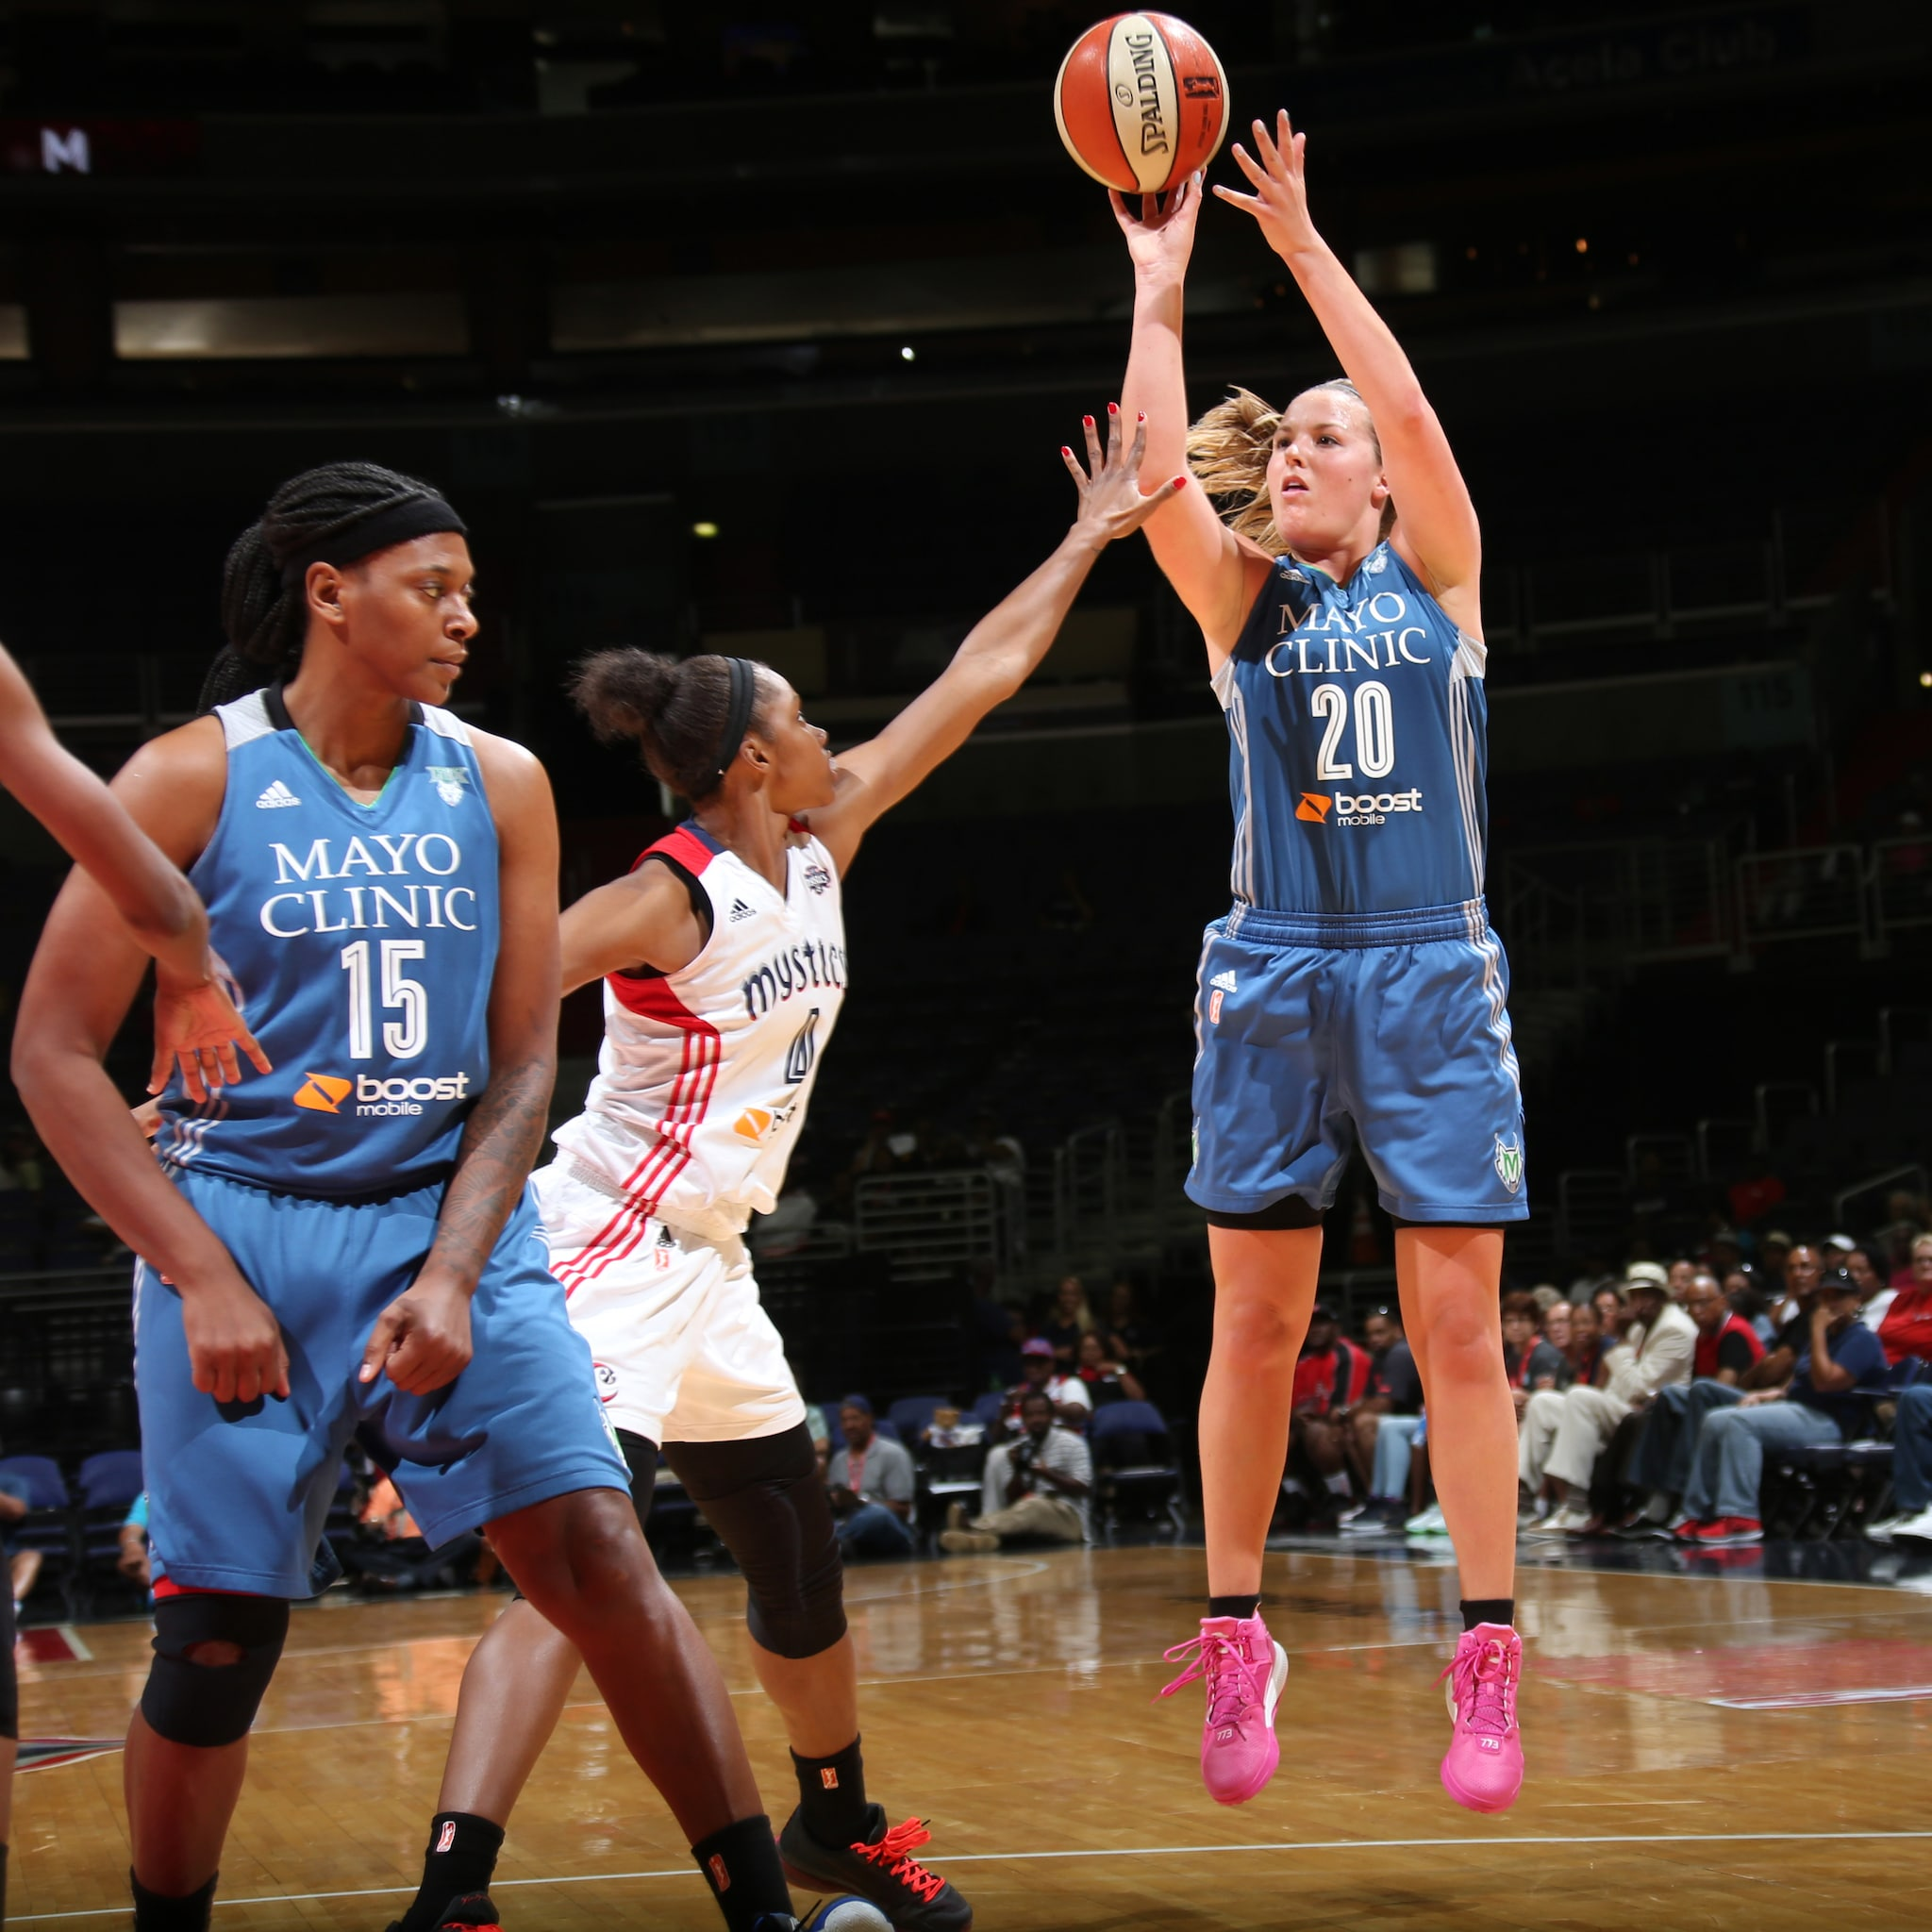 Lynx guard Tricia Liston came off the bench to provide quality minutes for Minnesota. Liston finished with 11 points on 4-of-6 (66 percent) shooting in just 17 minutes off the bench.